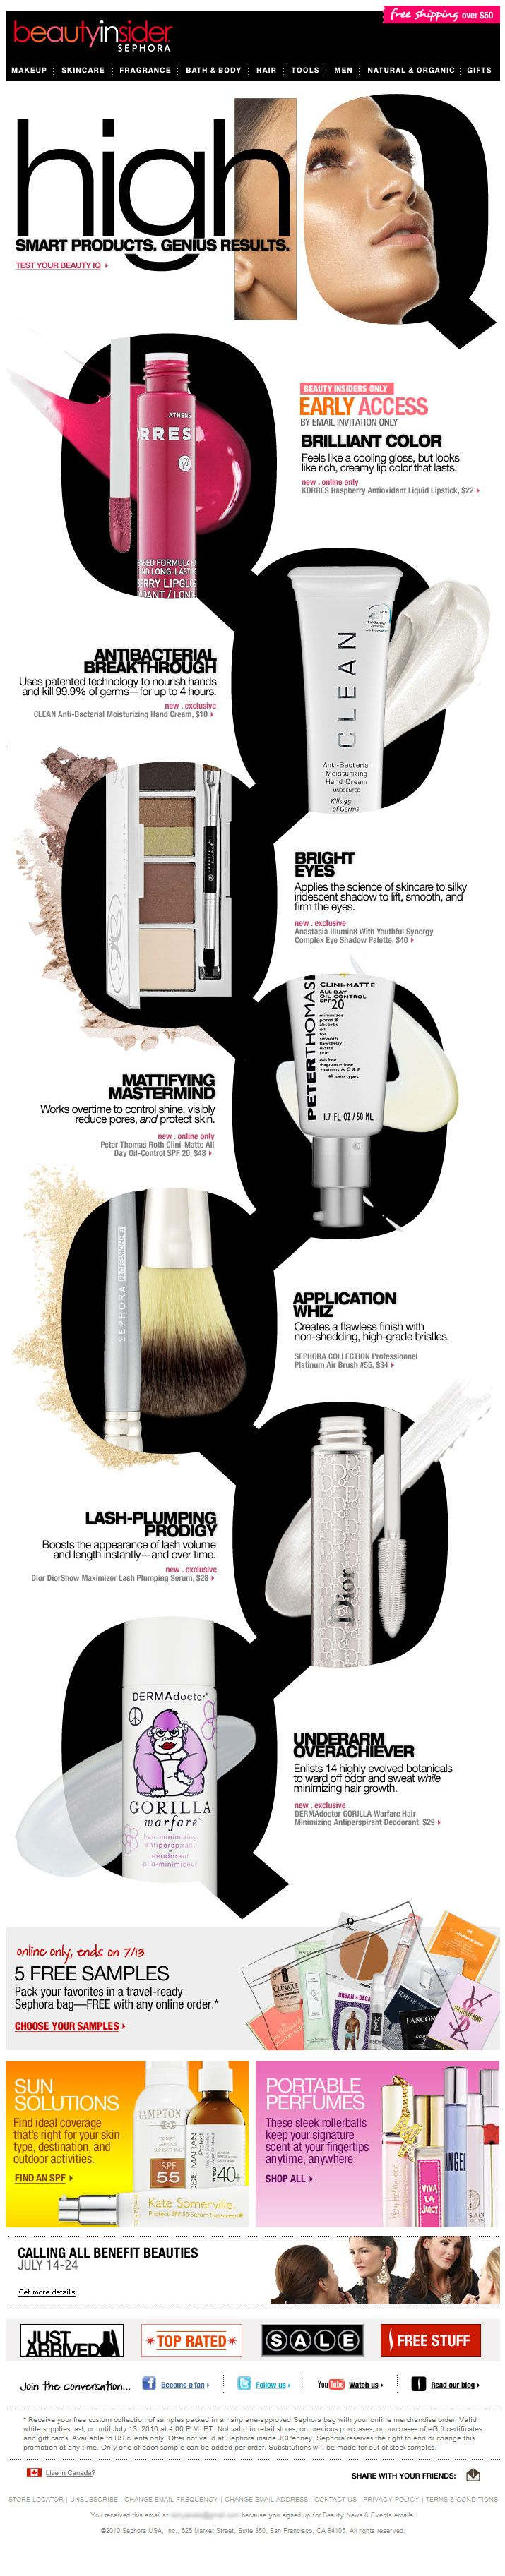 http://www.htmlemaildesigns.com/images/emails/sephora-7-10-10.jpg